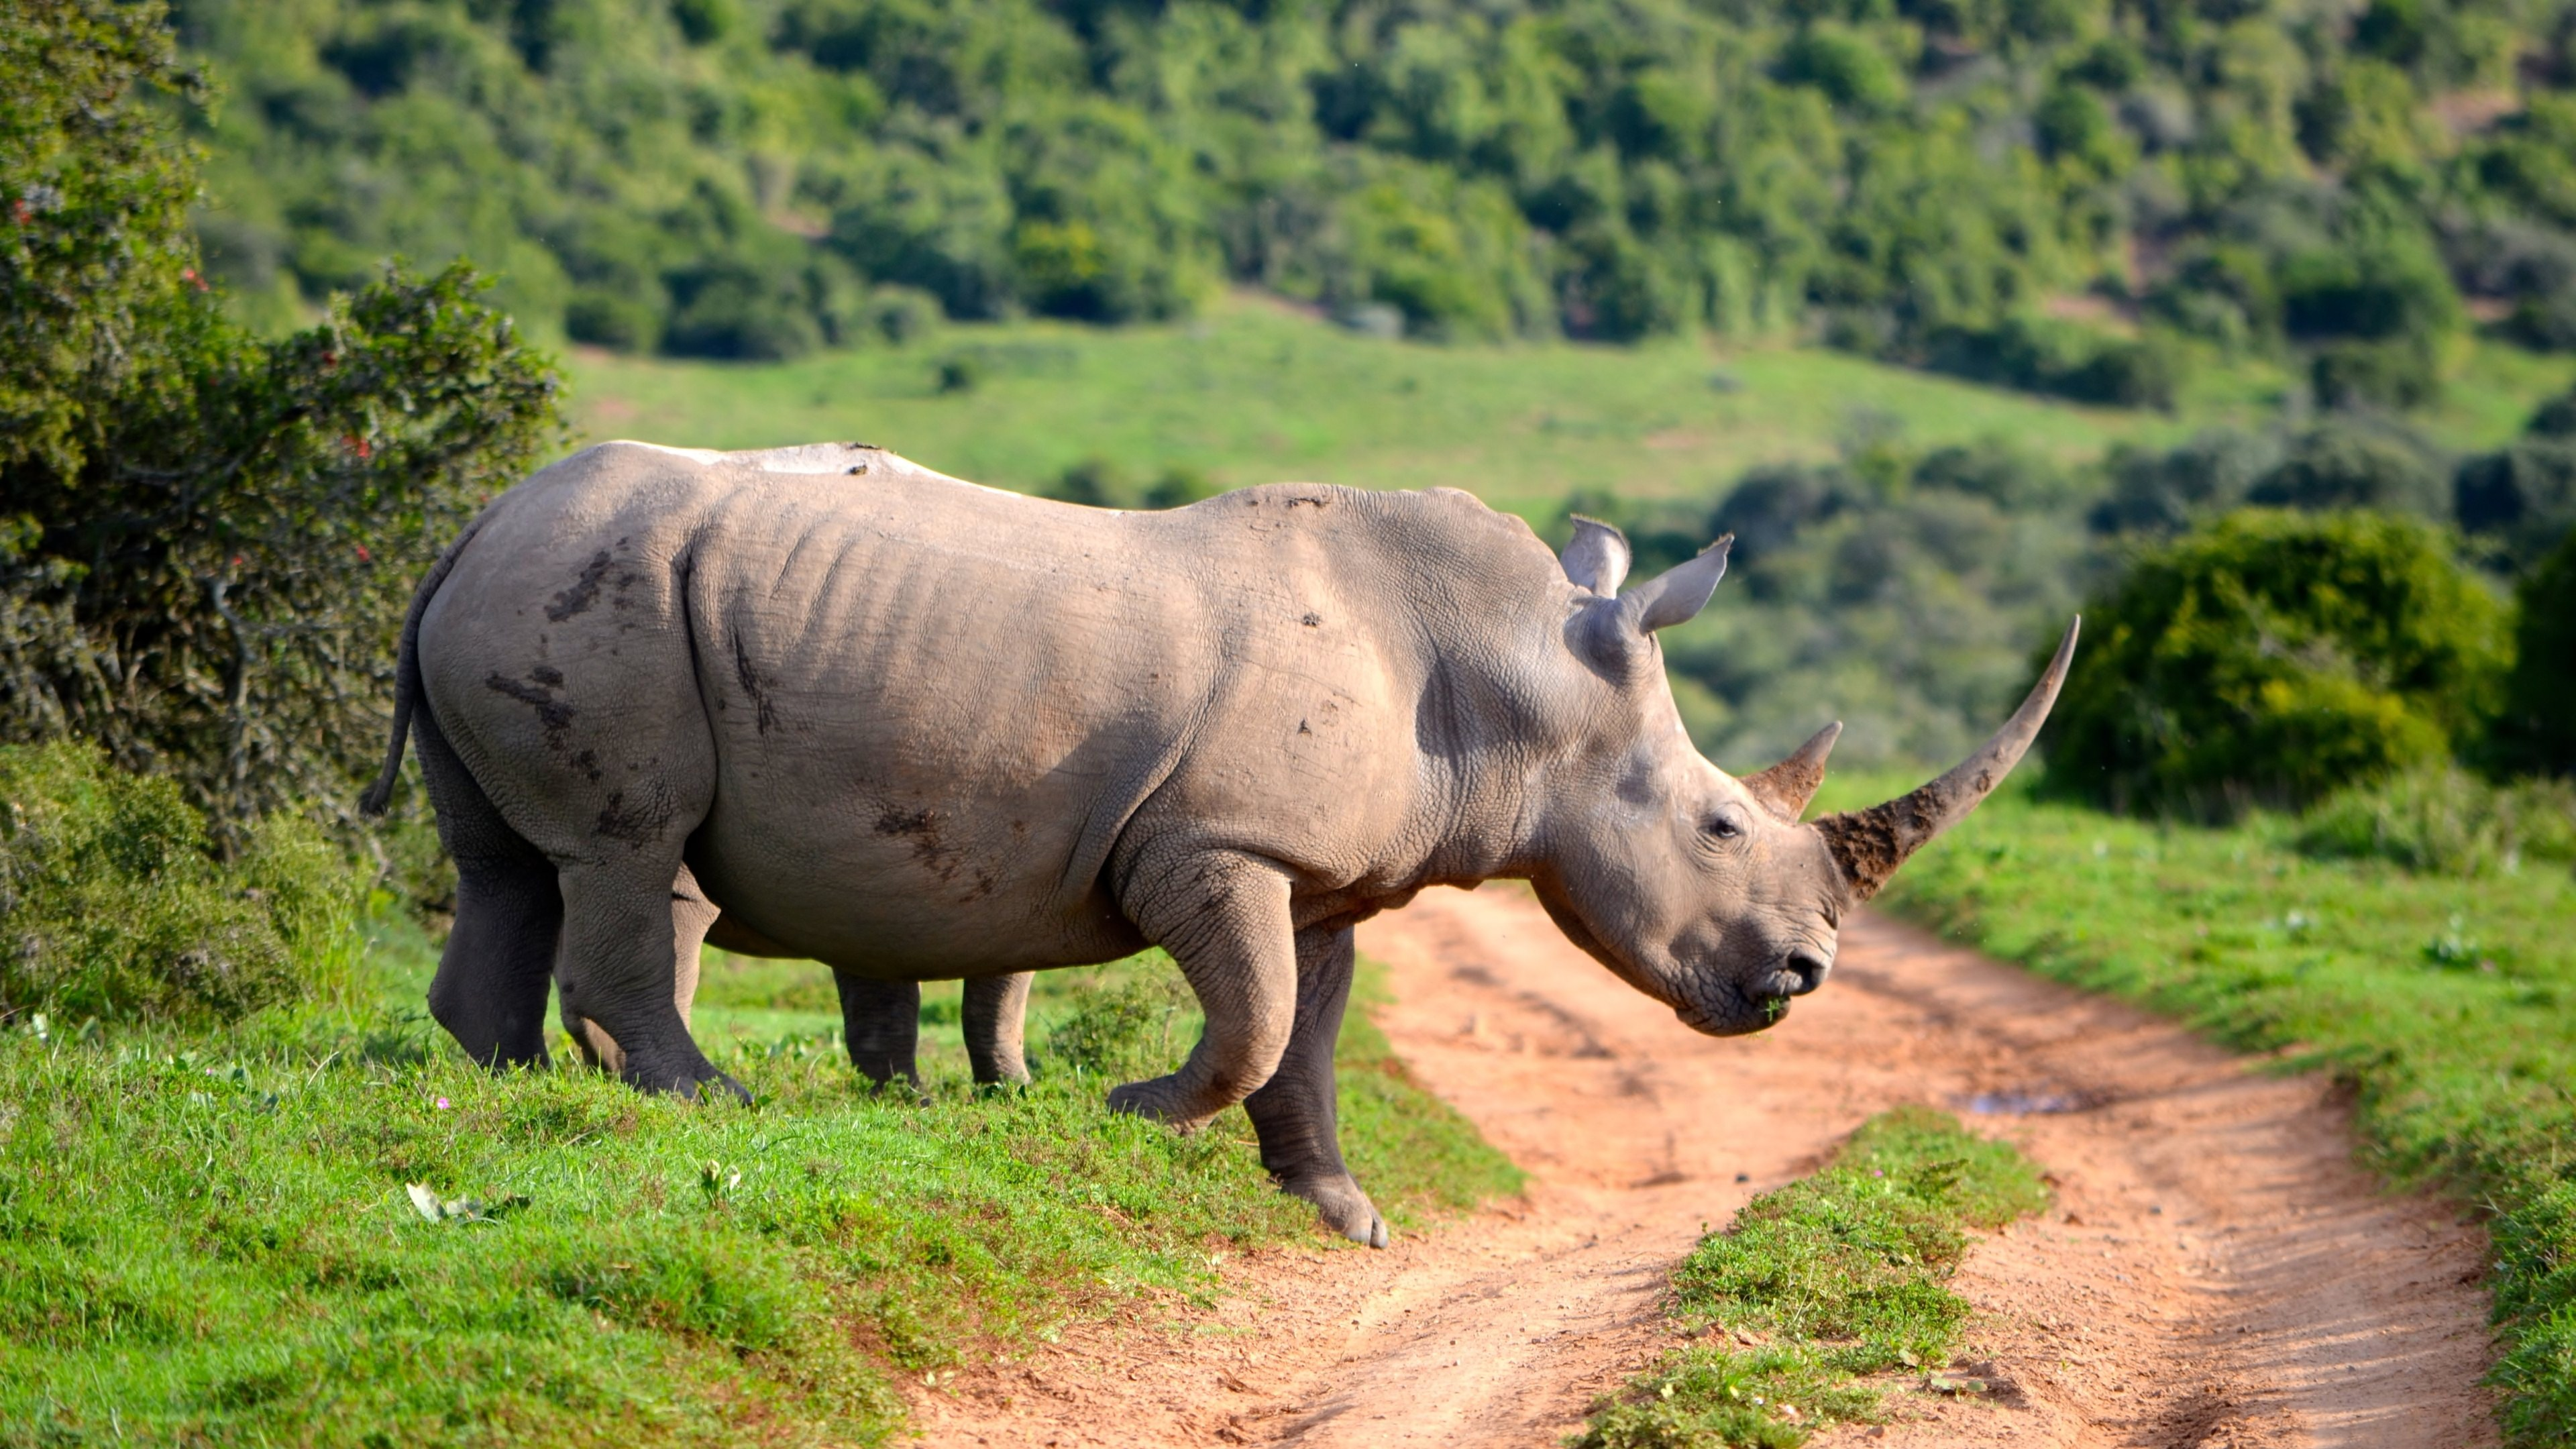 35 rhino hd wallpapers | backgrounds - wallpaper abyss